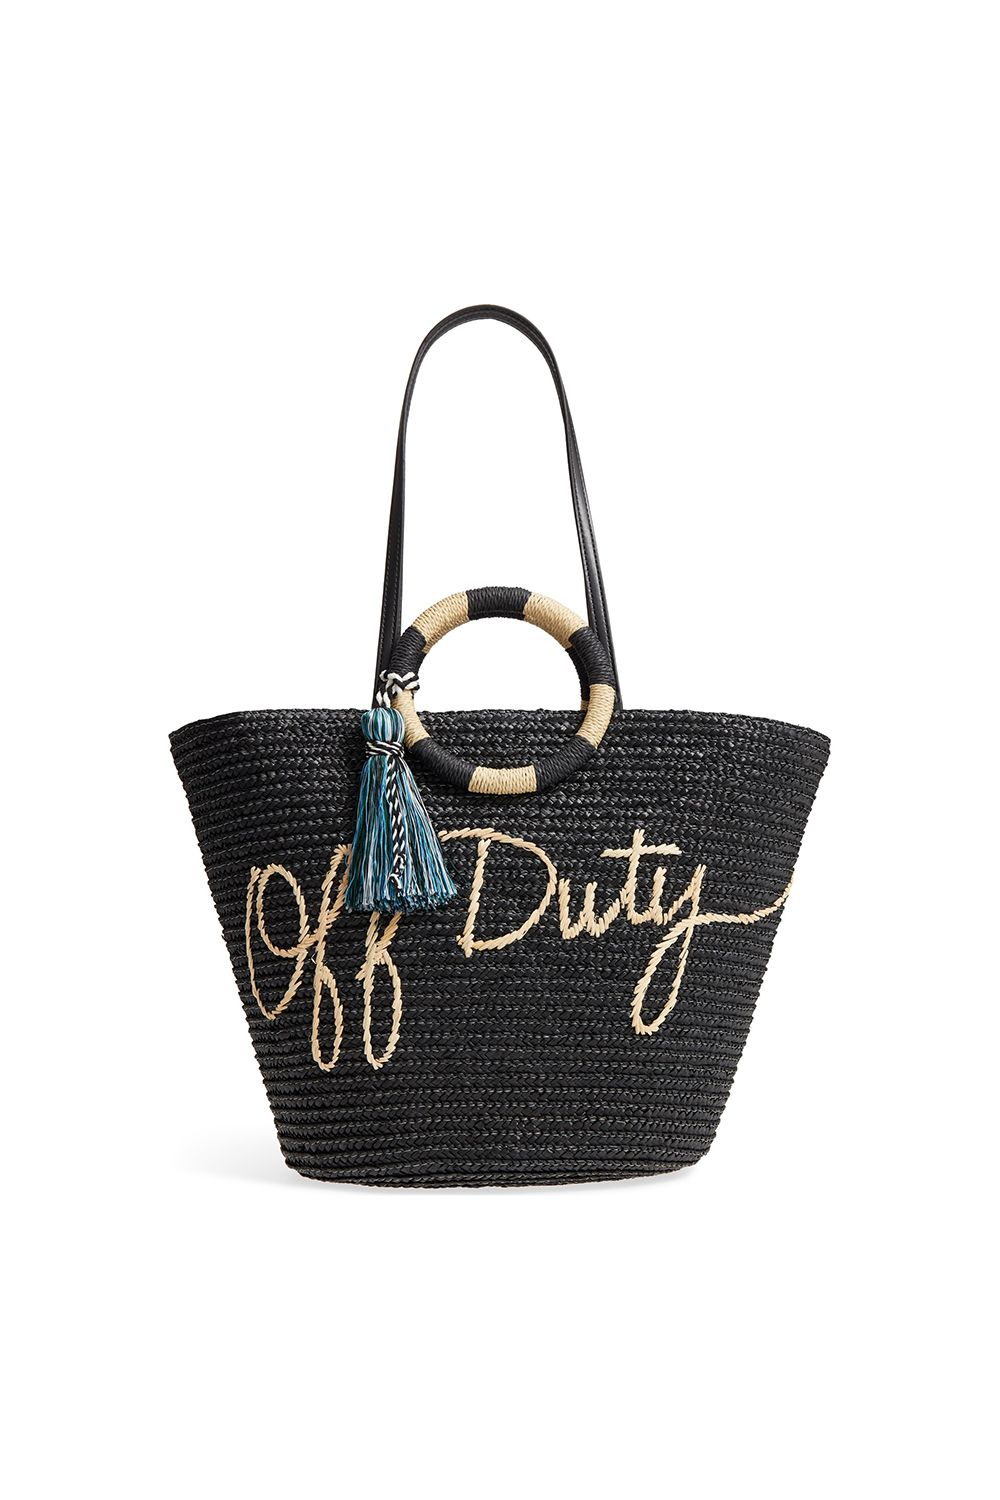 19 Trendiest Woven Accessories Cutest Raffia Straw And Wicker Zara Double Strap Bag Bags Hats Shoes To Shop For Summer